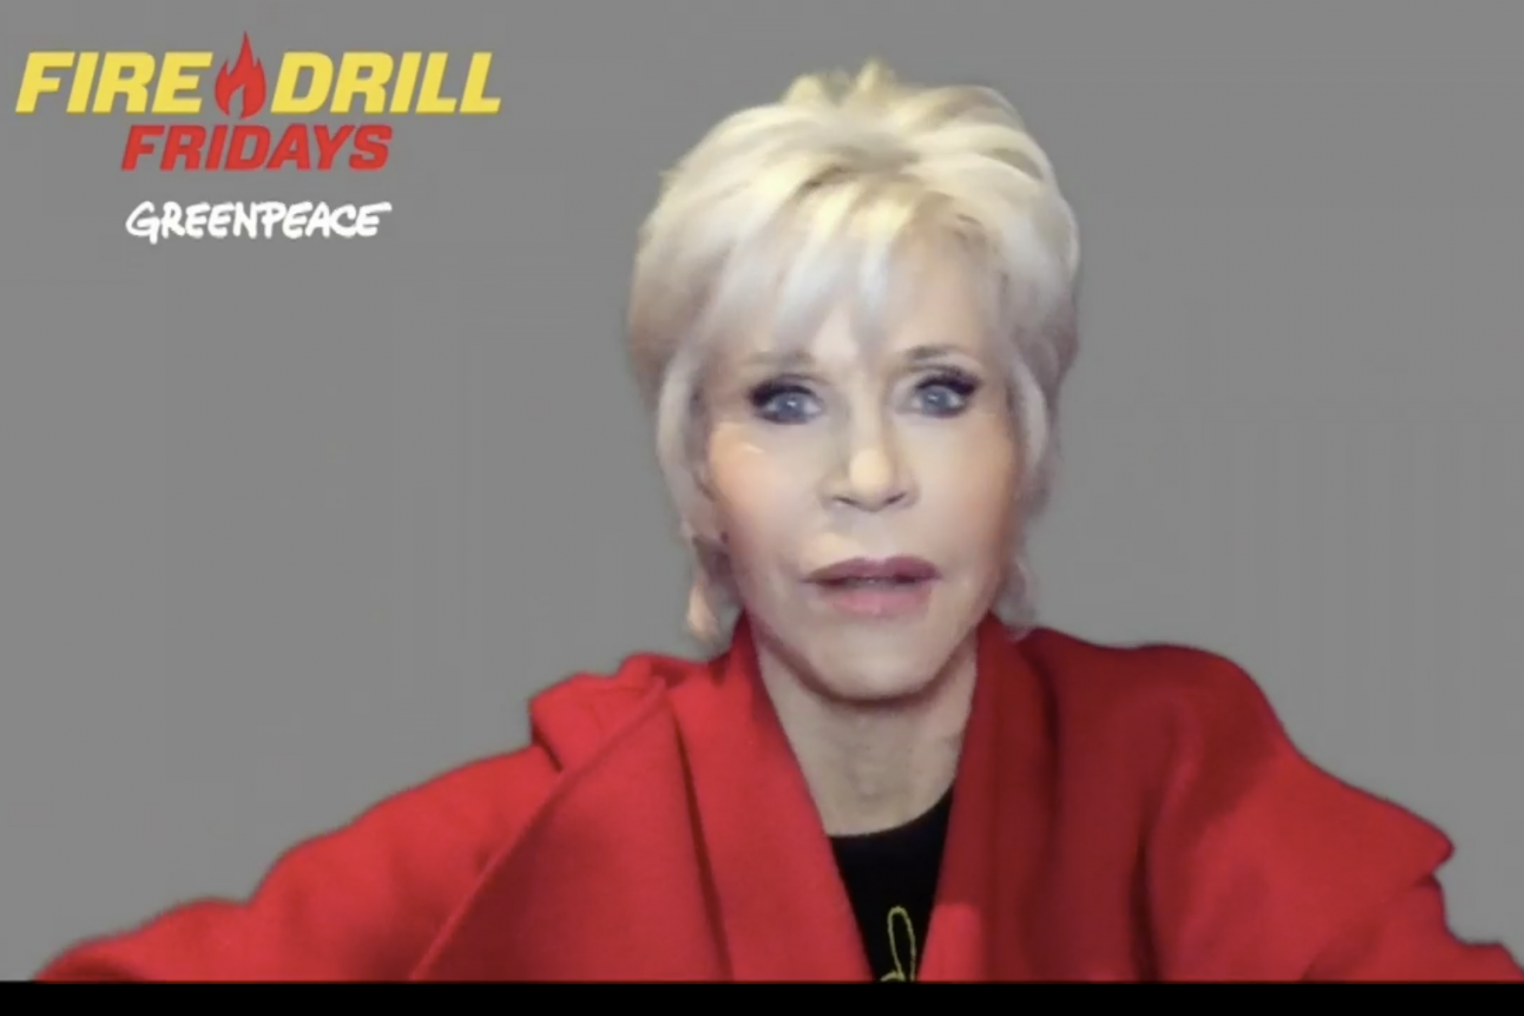 Jane Fonda breaks the internet: Fire Drill Friday's first virtual protest crashes after thousands join online